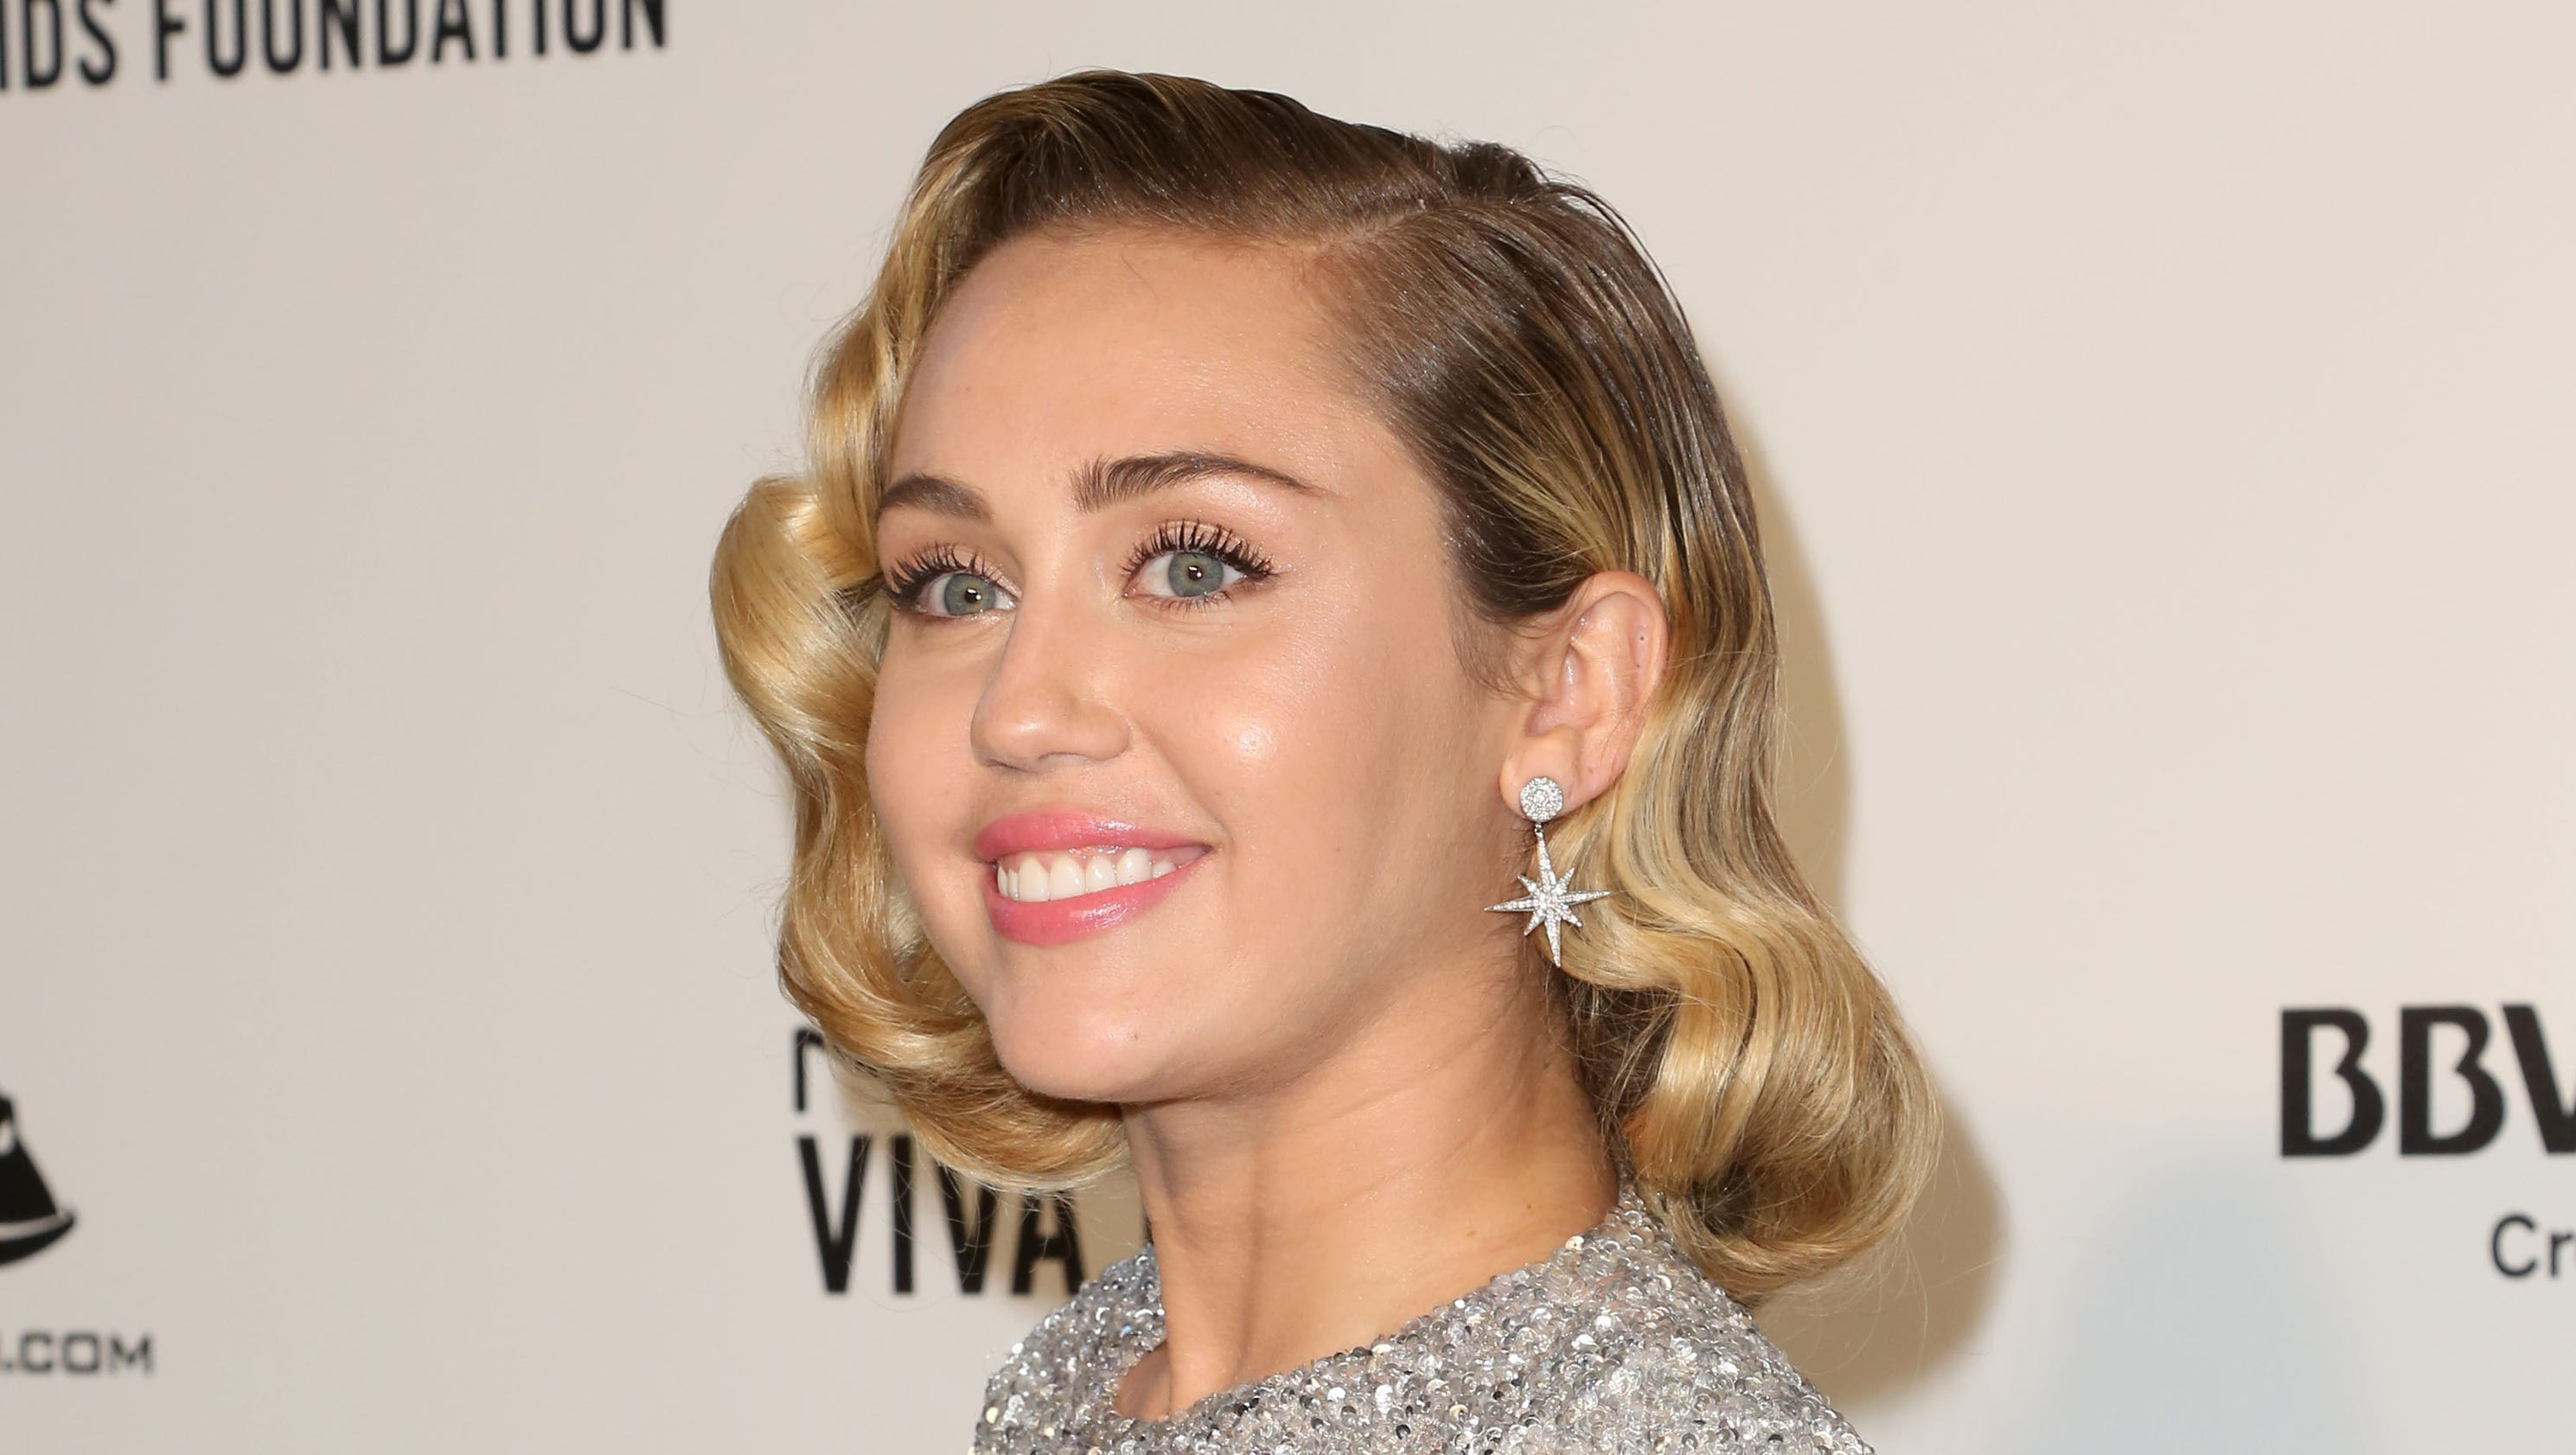 Miley Cyrus sued for $300M over 'We Can't Stop'